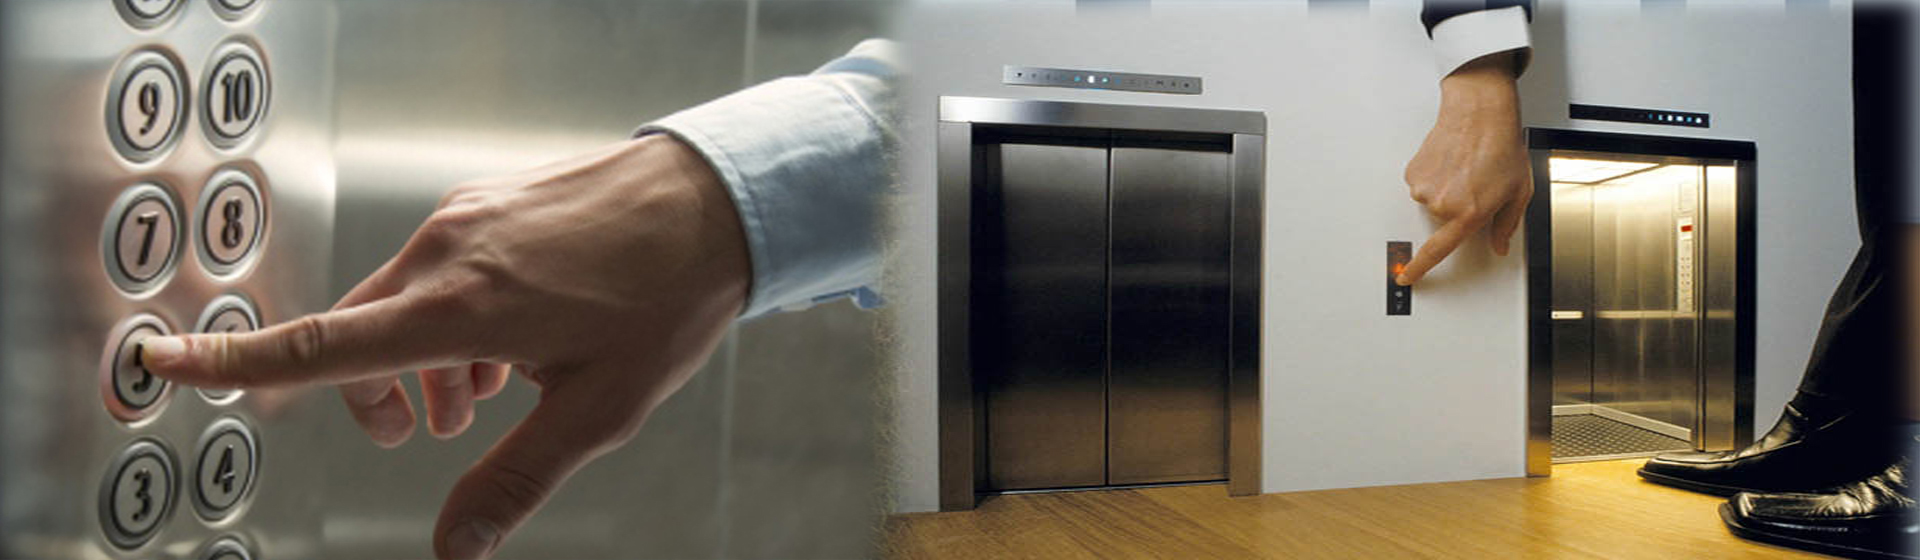 AVON Elevators - Take the extra Step for Safety - Manufacturing of